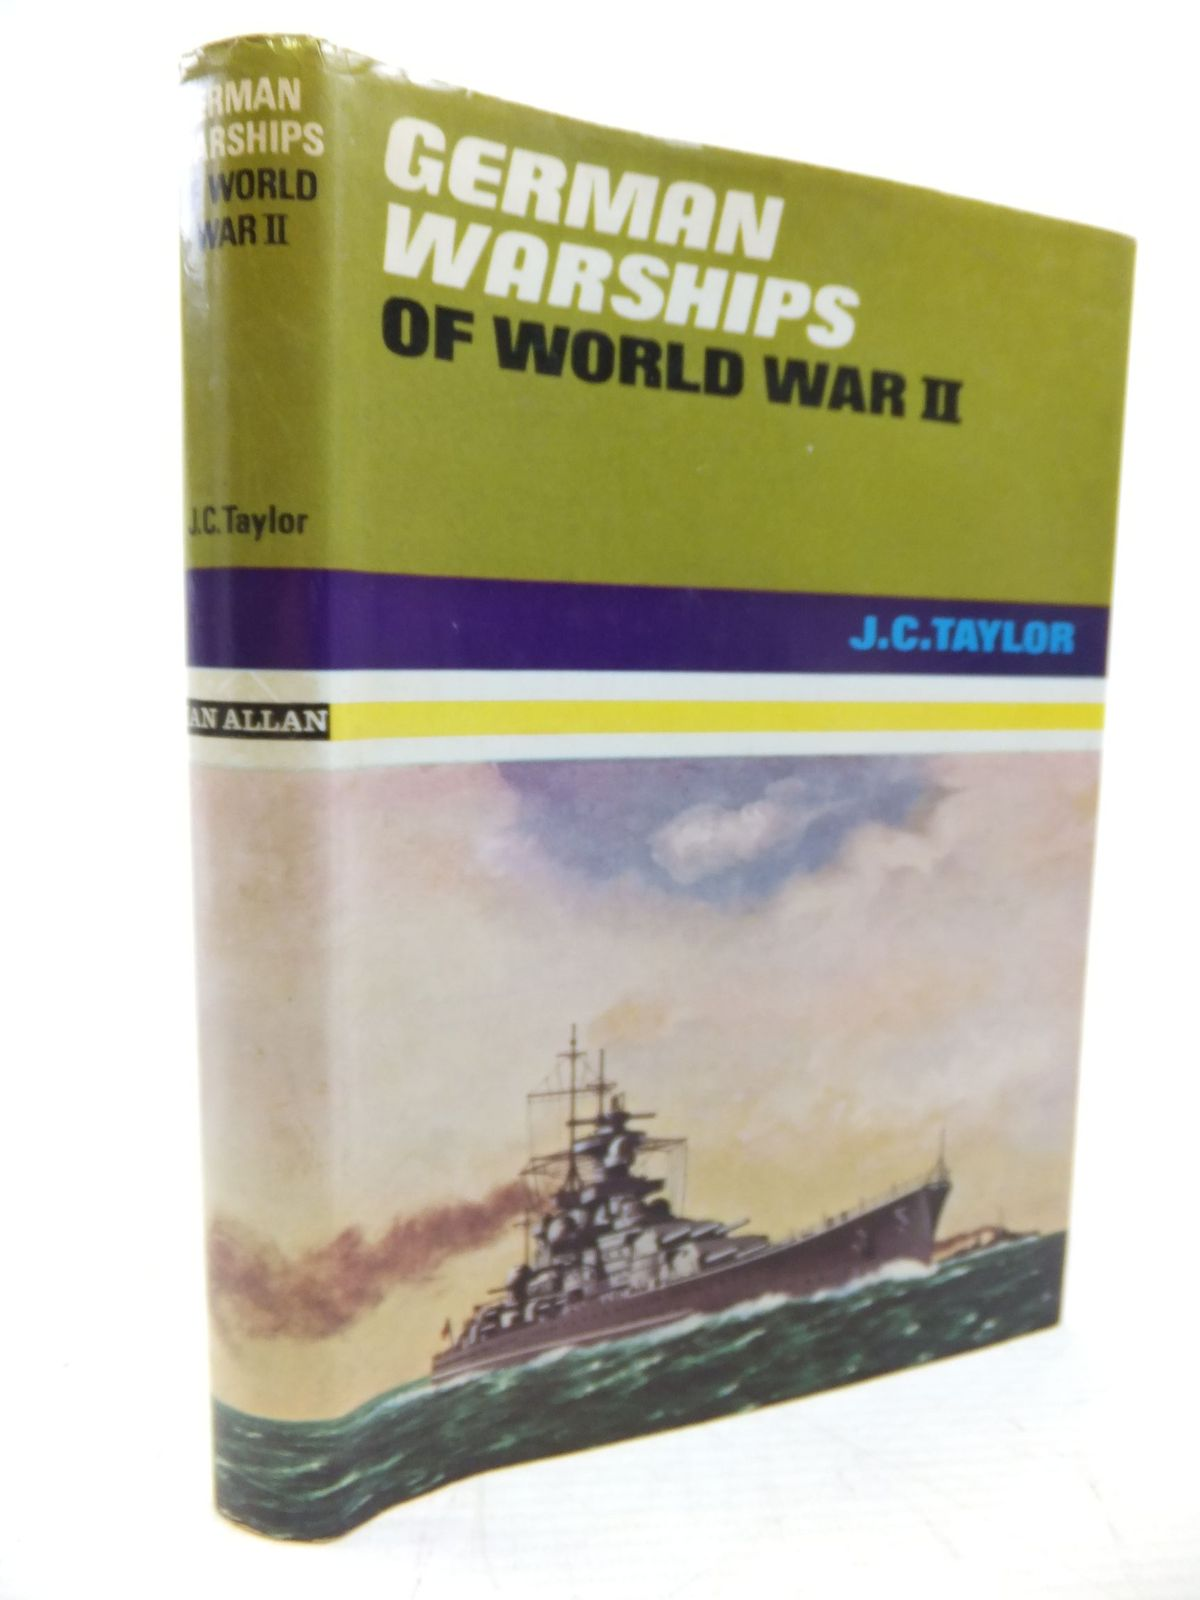 GERMAN WARSHIPS OF WORLD WAR II written by Taylor, J C